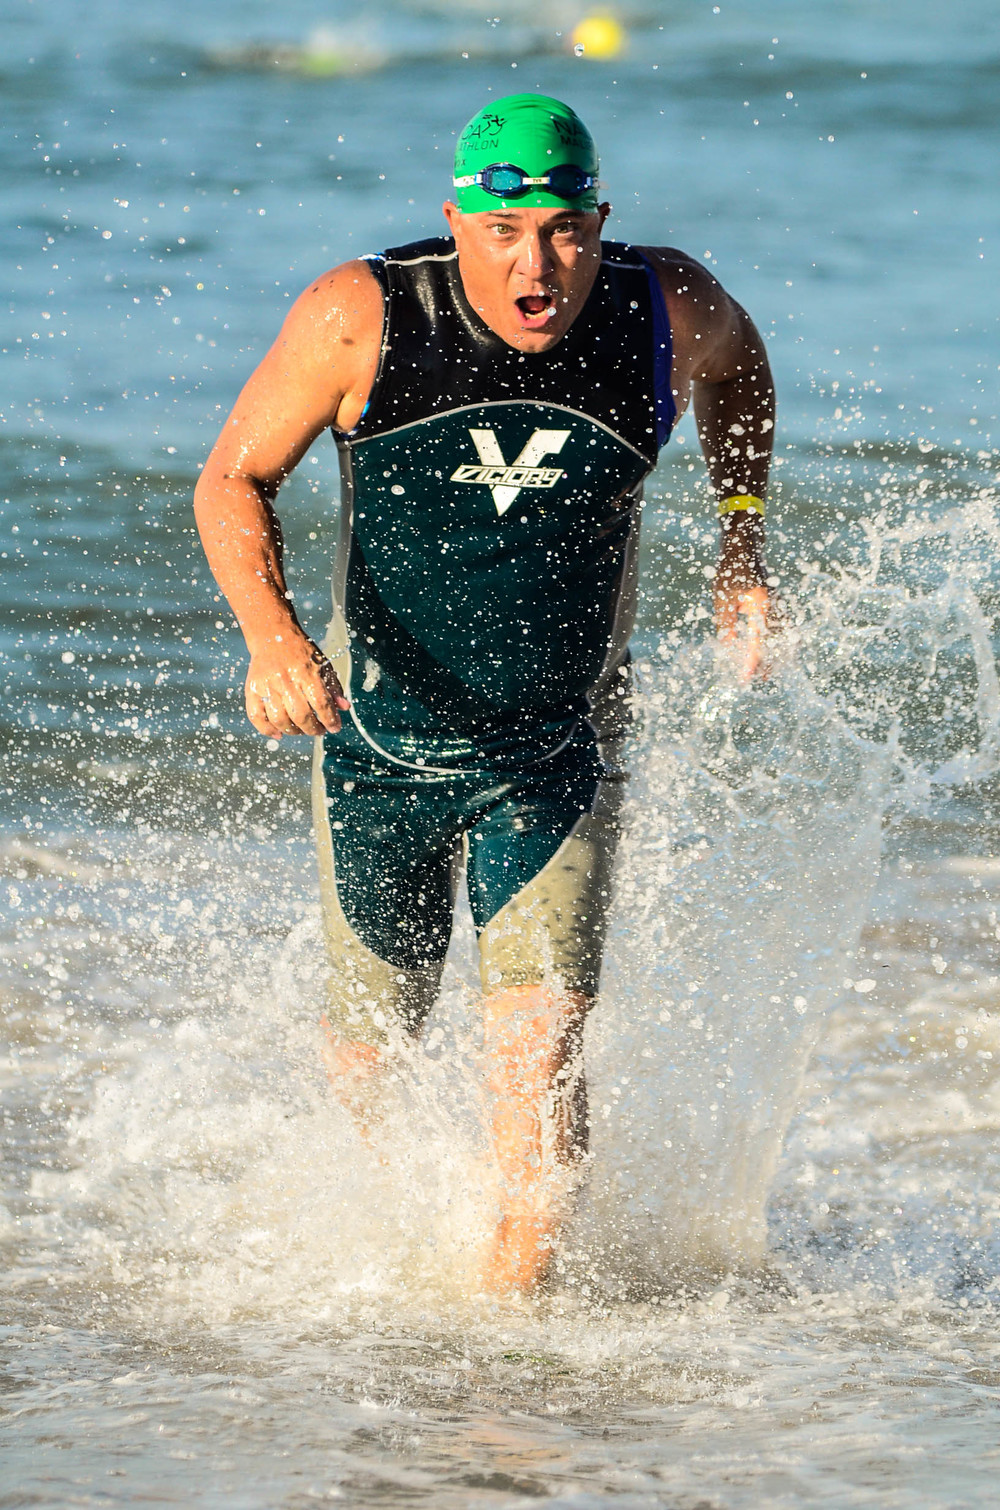 9-14-14 Malibu Triathlon (2 of 4).jpg